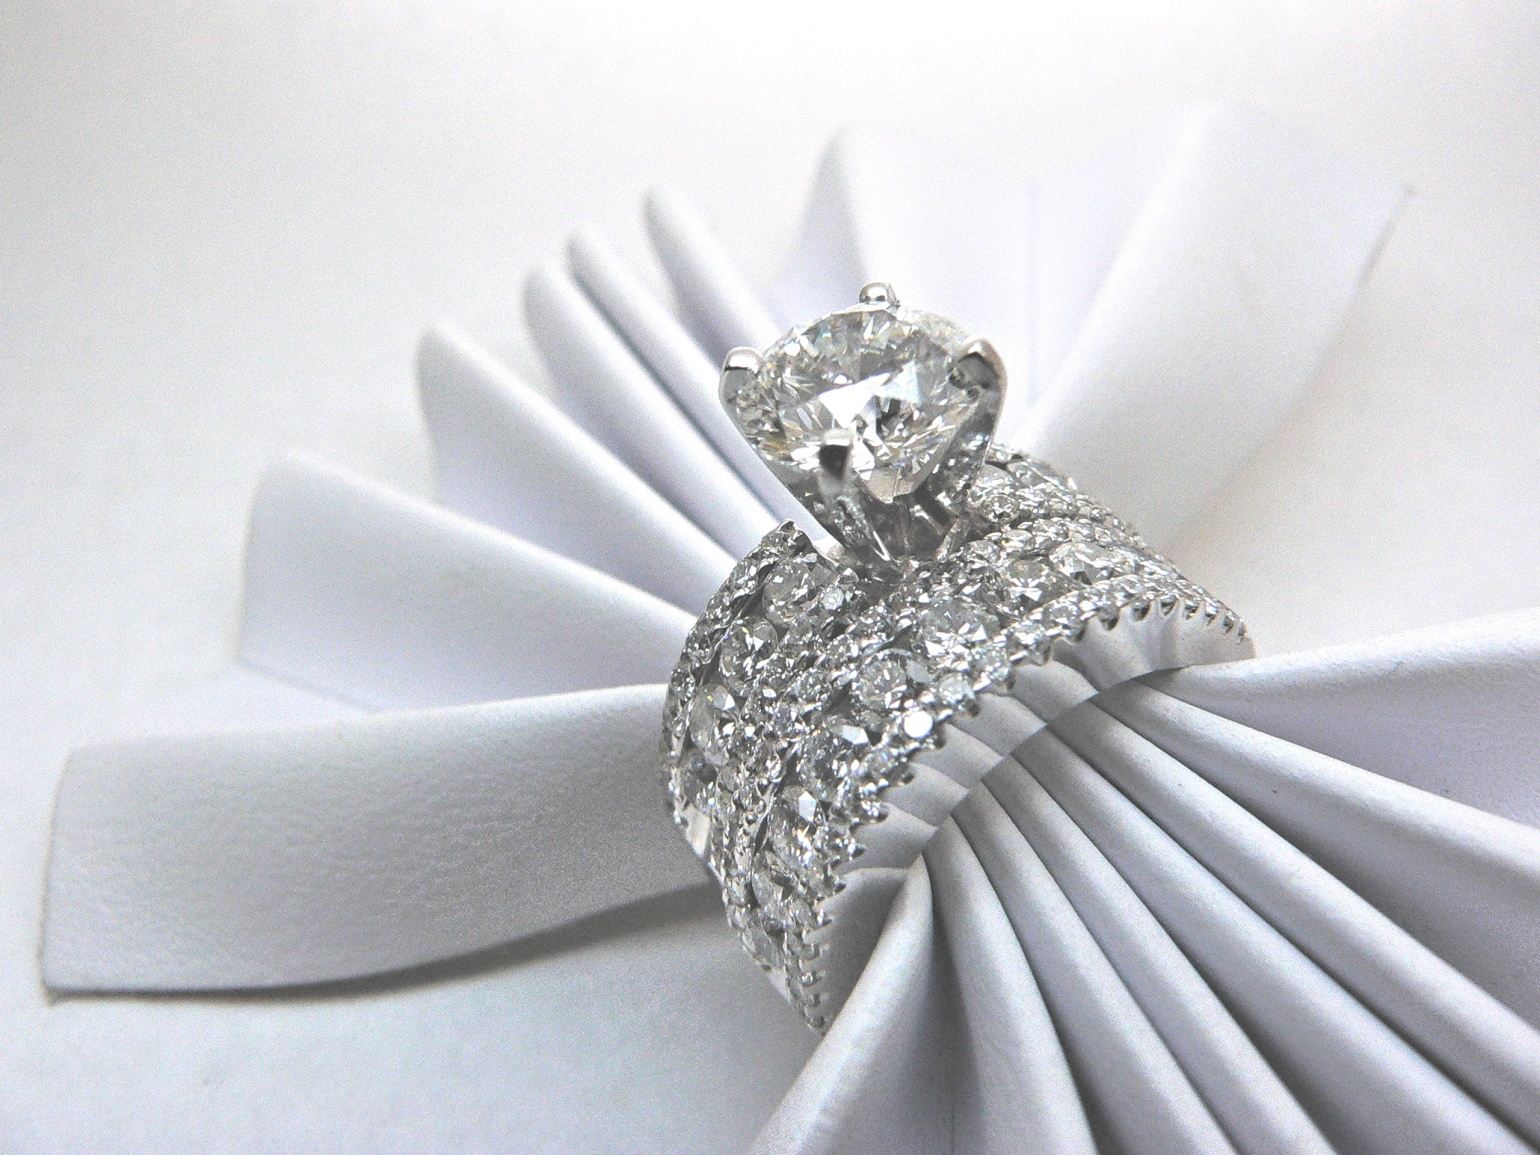 Daimond engagement ring with matching band